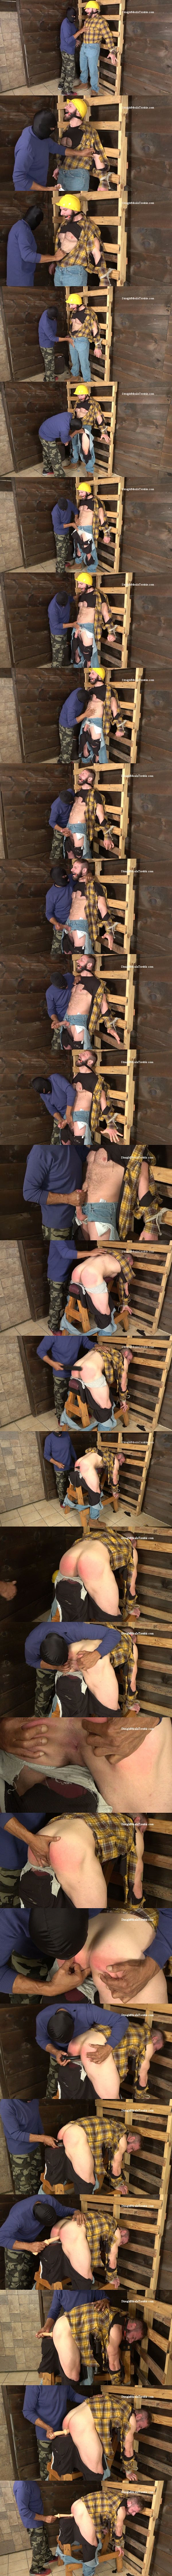 Masculine straight construction worker Anthony gets bound, gagged, jerked off, spanked, fingered and dildoed by a masked perverted guy in Utility Worker Revenge at Straightmenintrouble 01